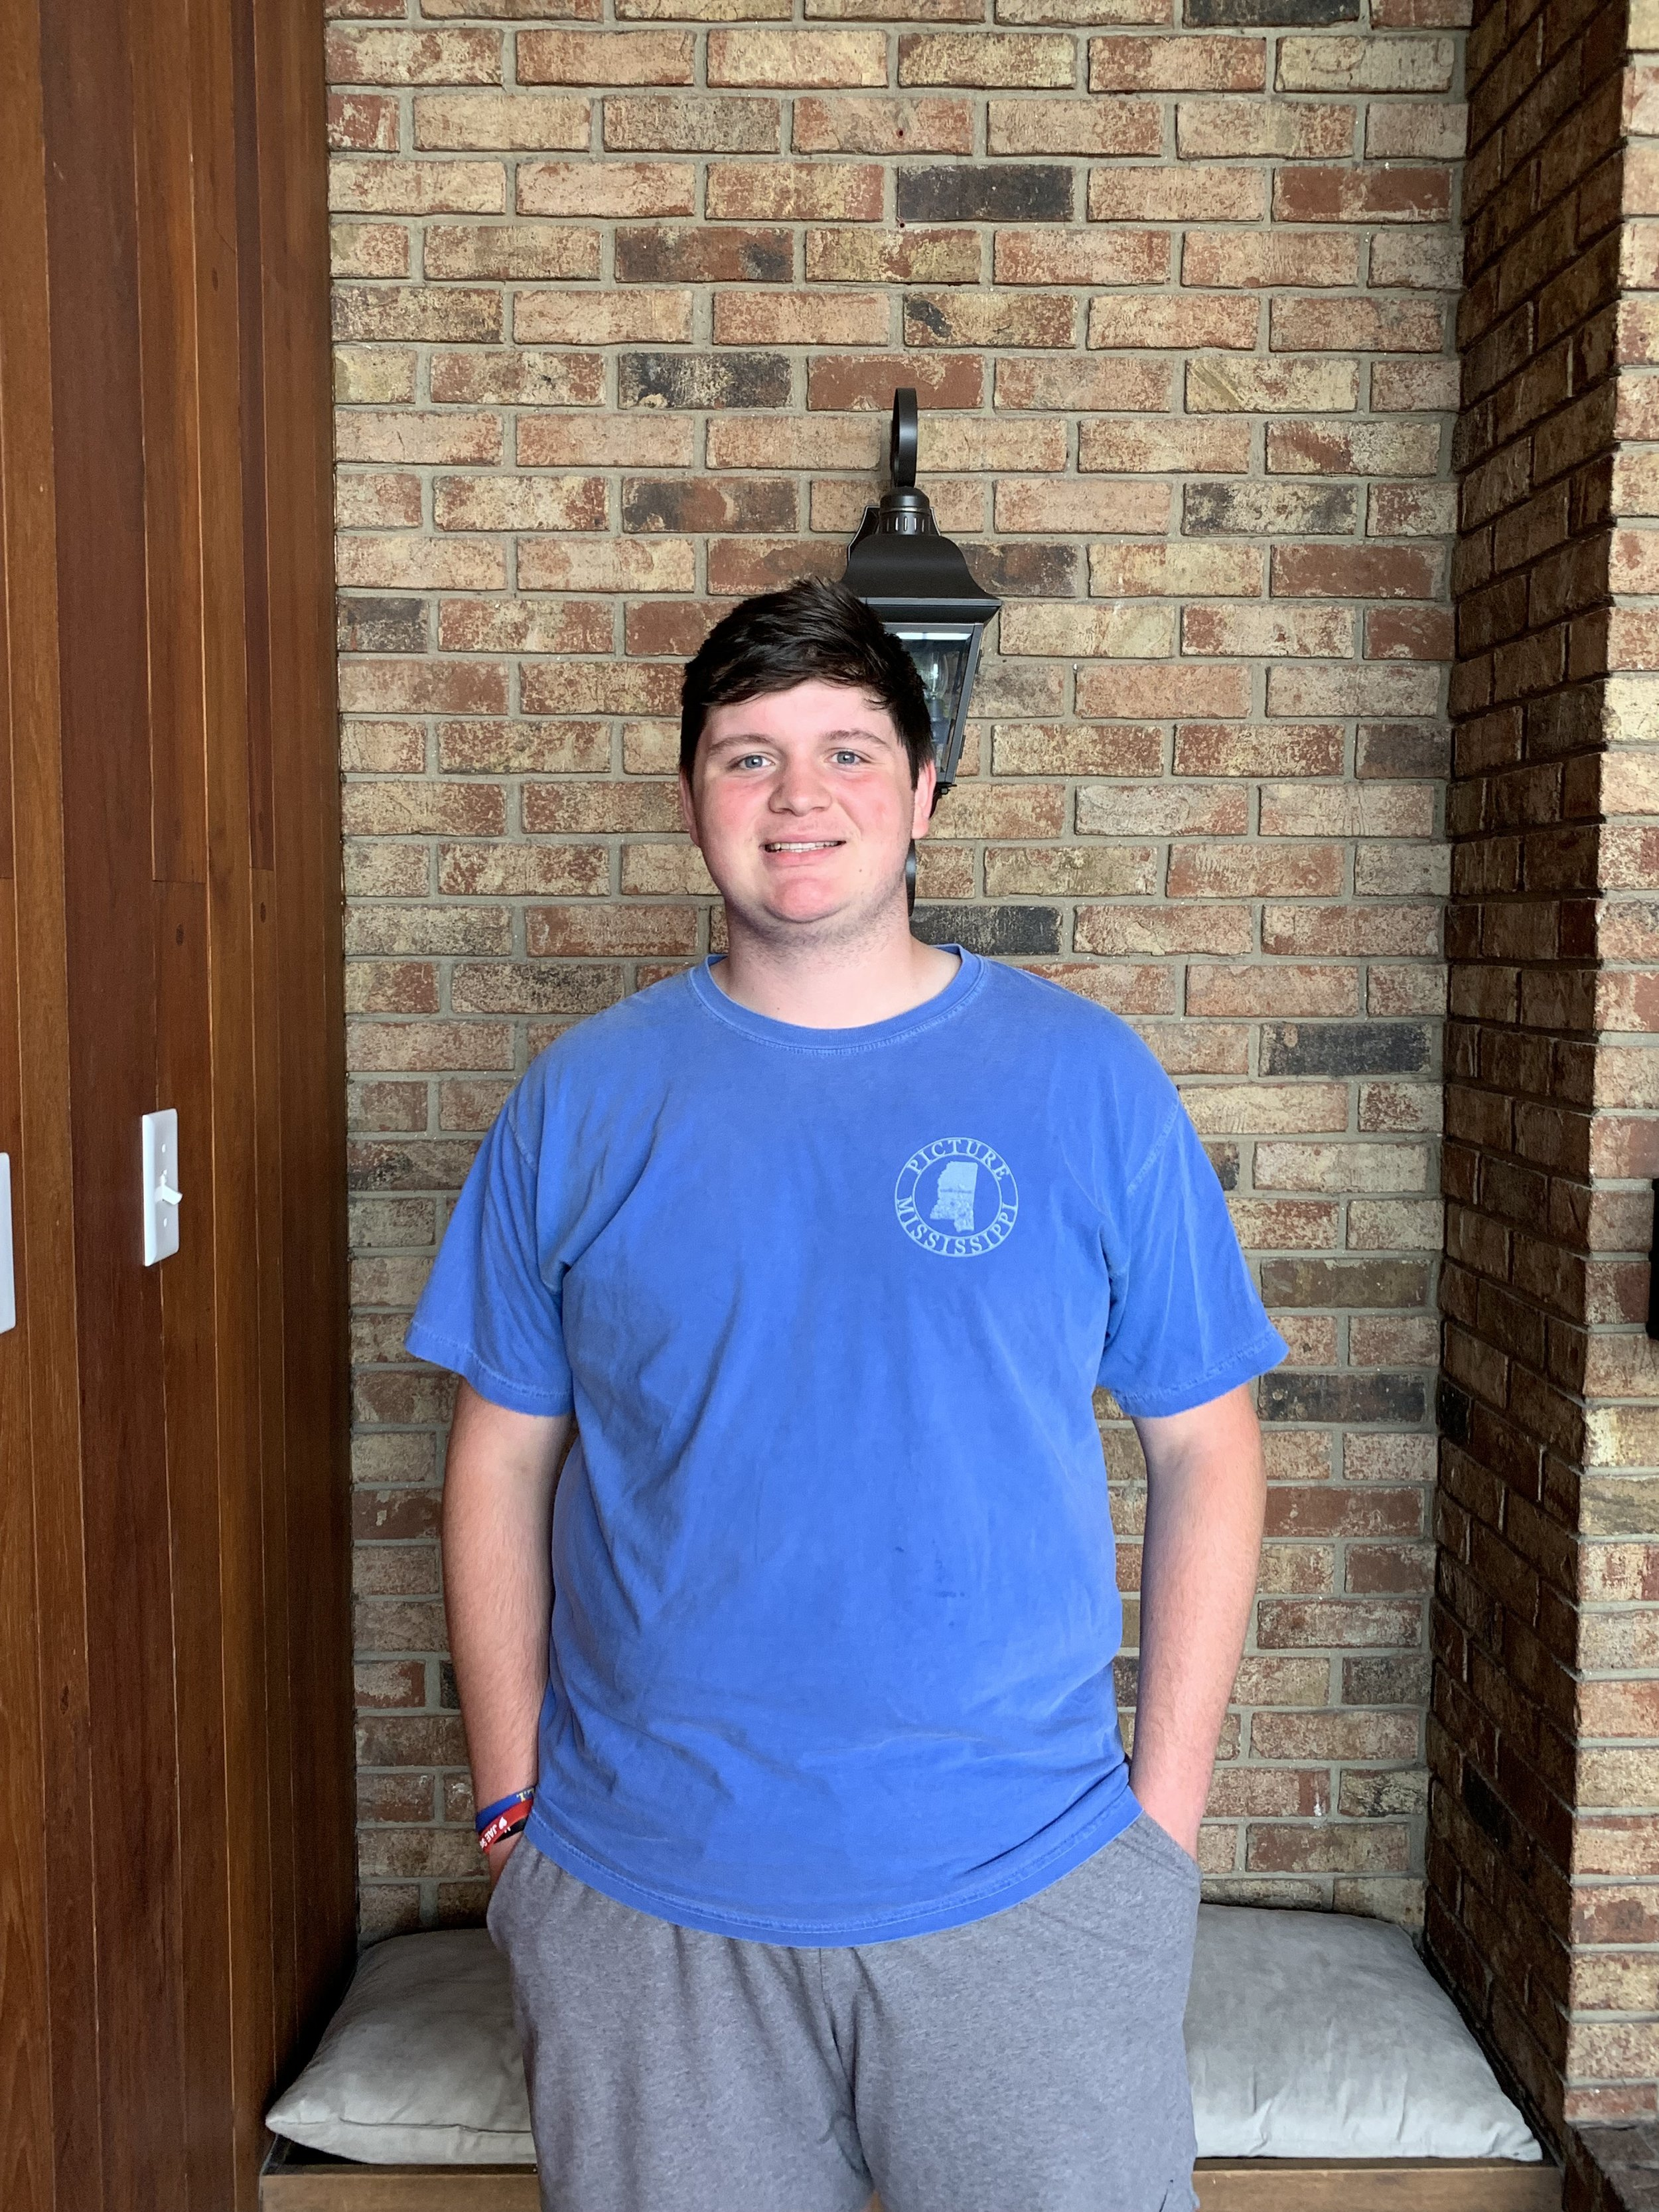 Jackson McDonald - Jackson's favorite hobbies are football and music specifically playing his Ukulele. He is sometimes shyer than others but he enjoys talking once he knows you. His younger brother is his favorite person. Jackson wants to be a teacher someday. He loves music, singing, and reading.